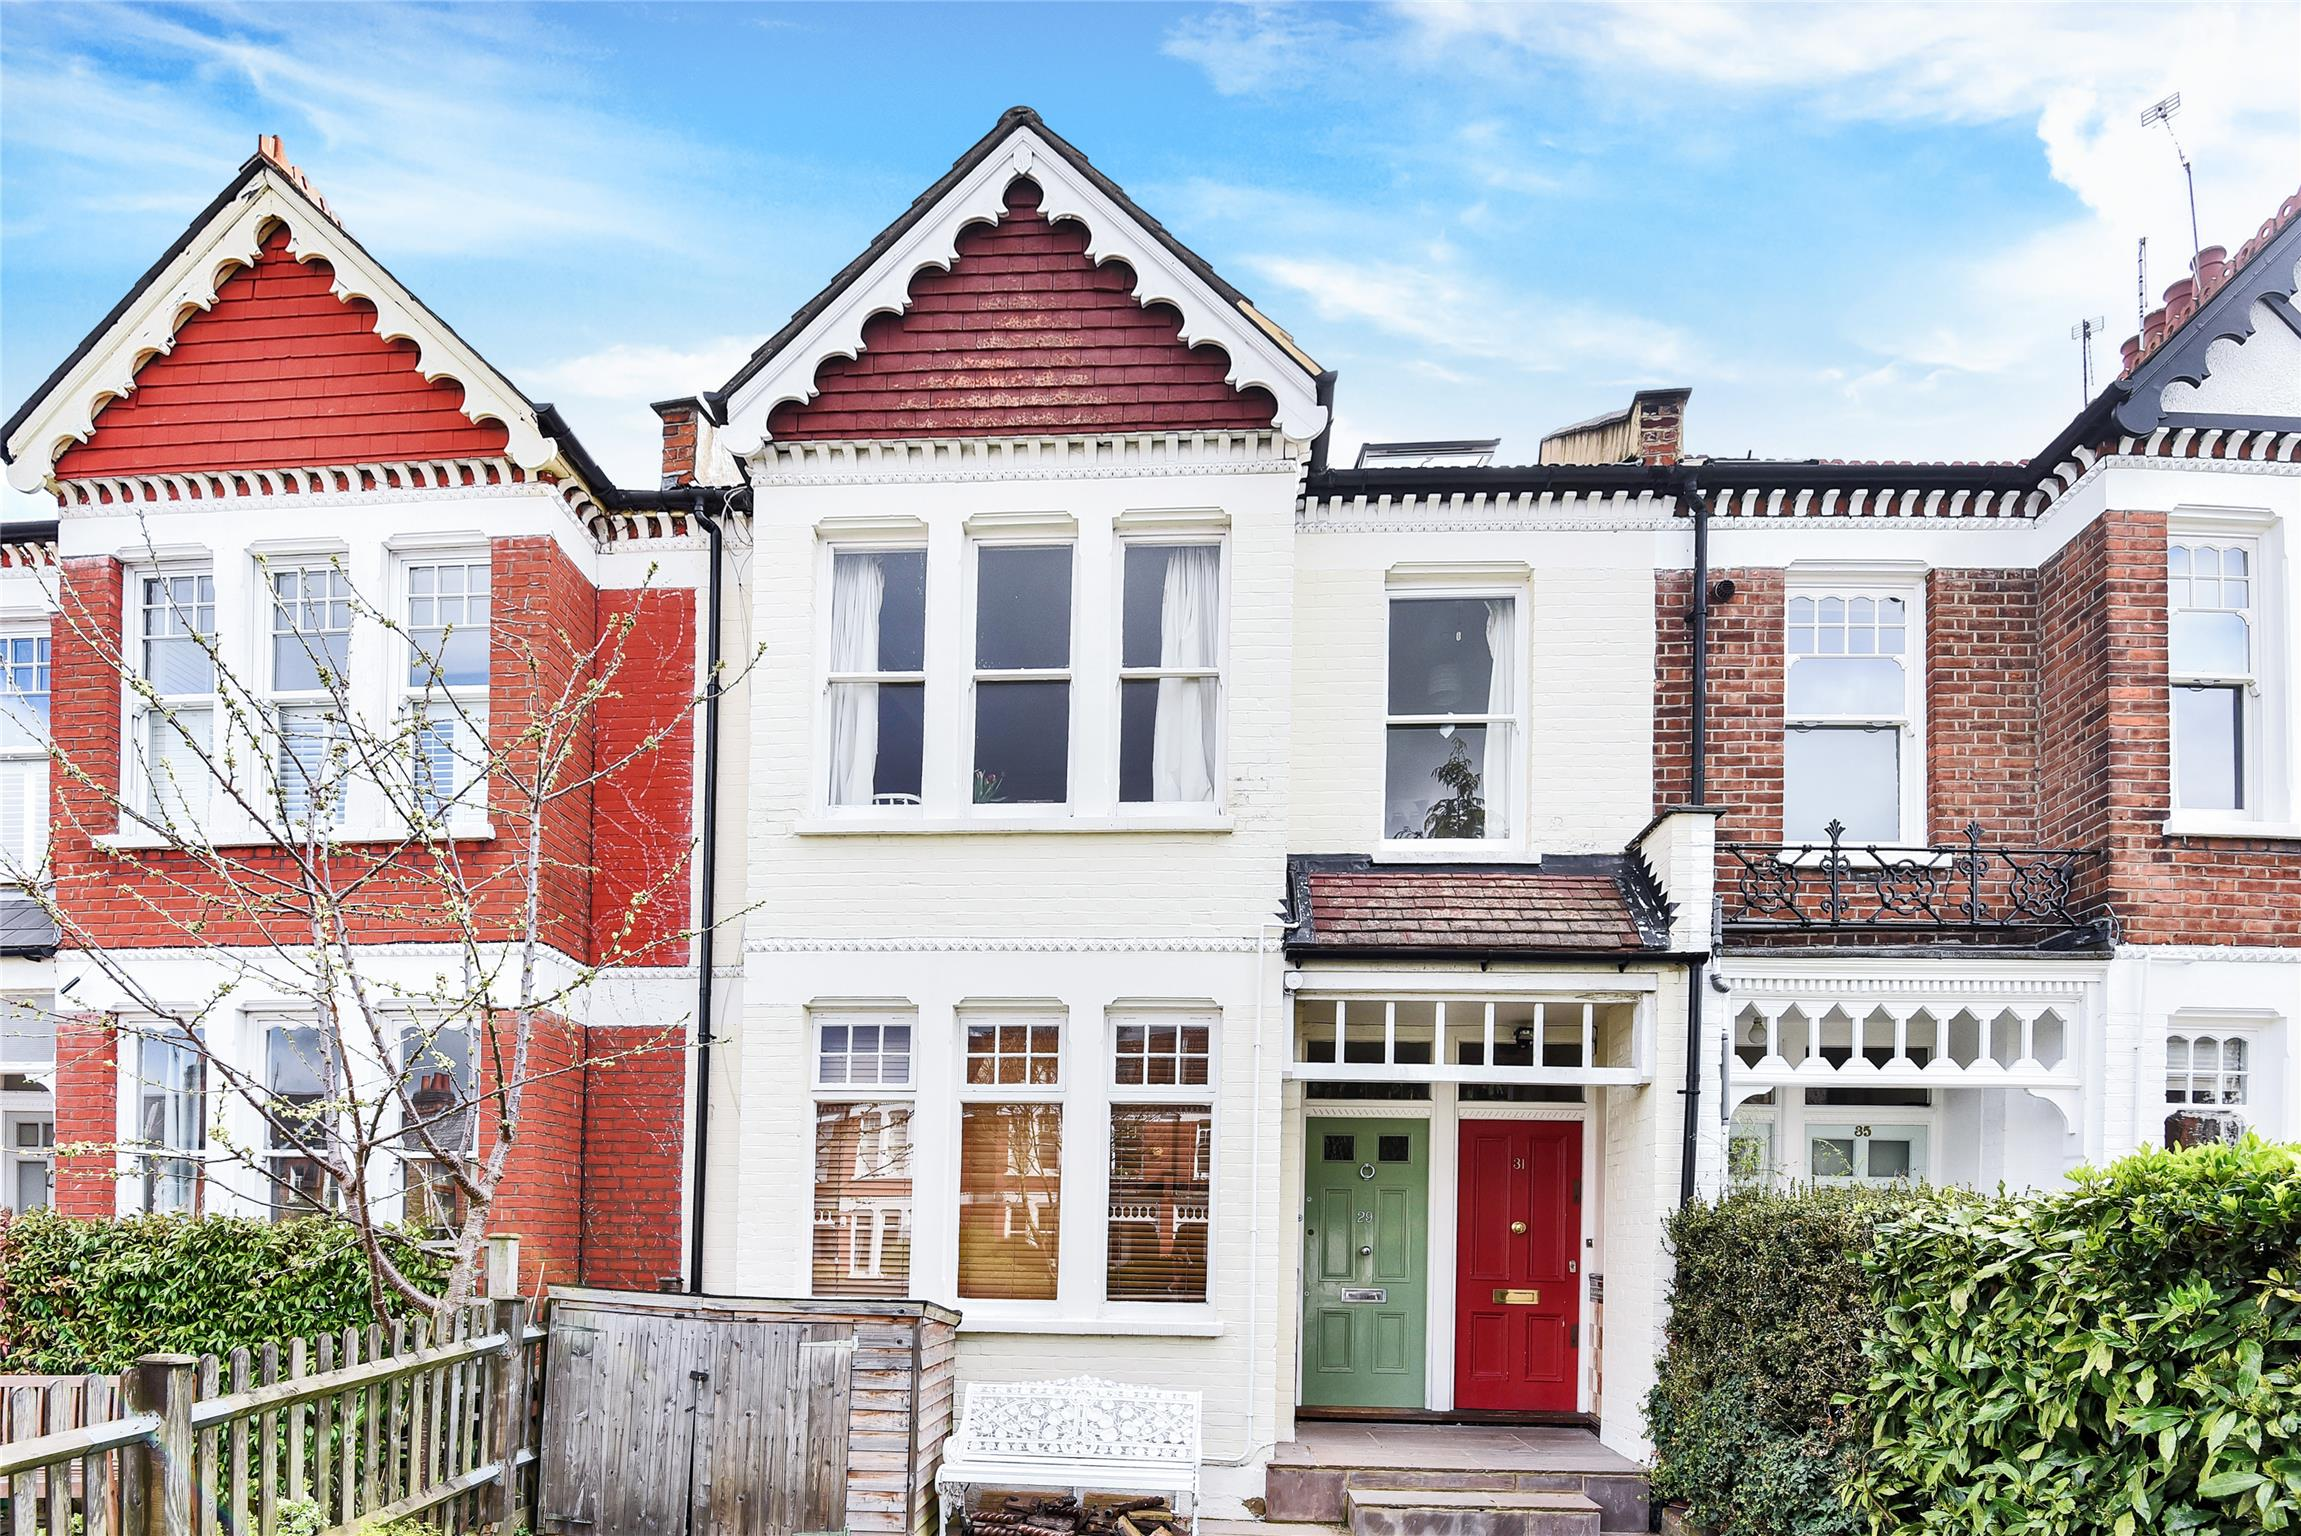 What exactly is a maisonette? Find out here